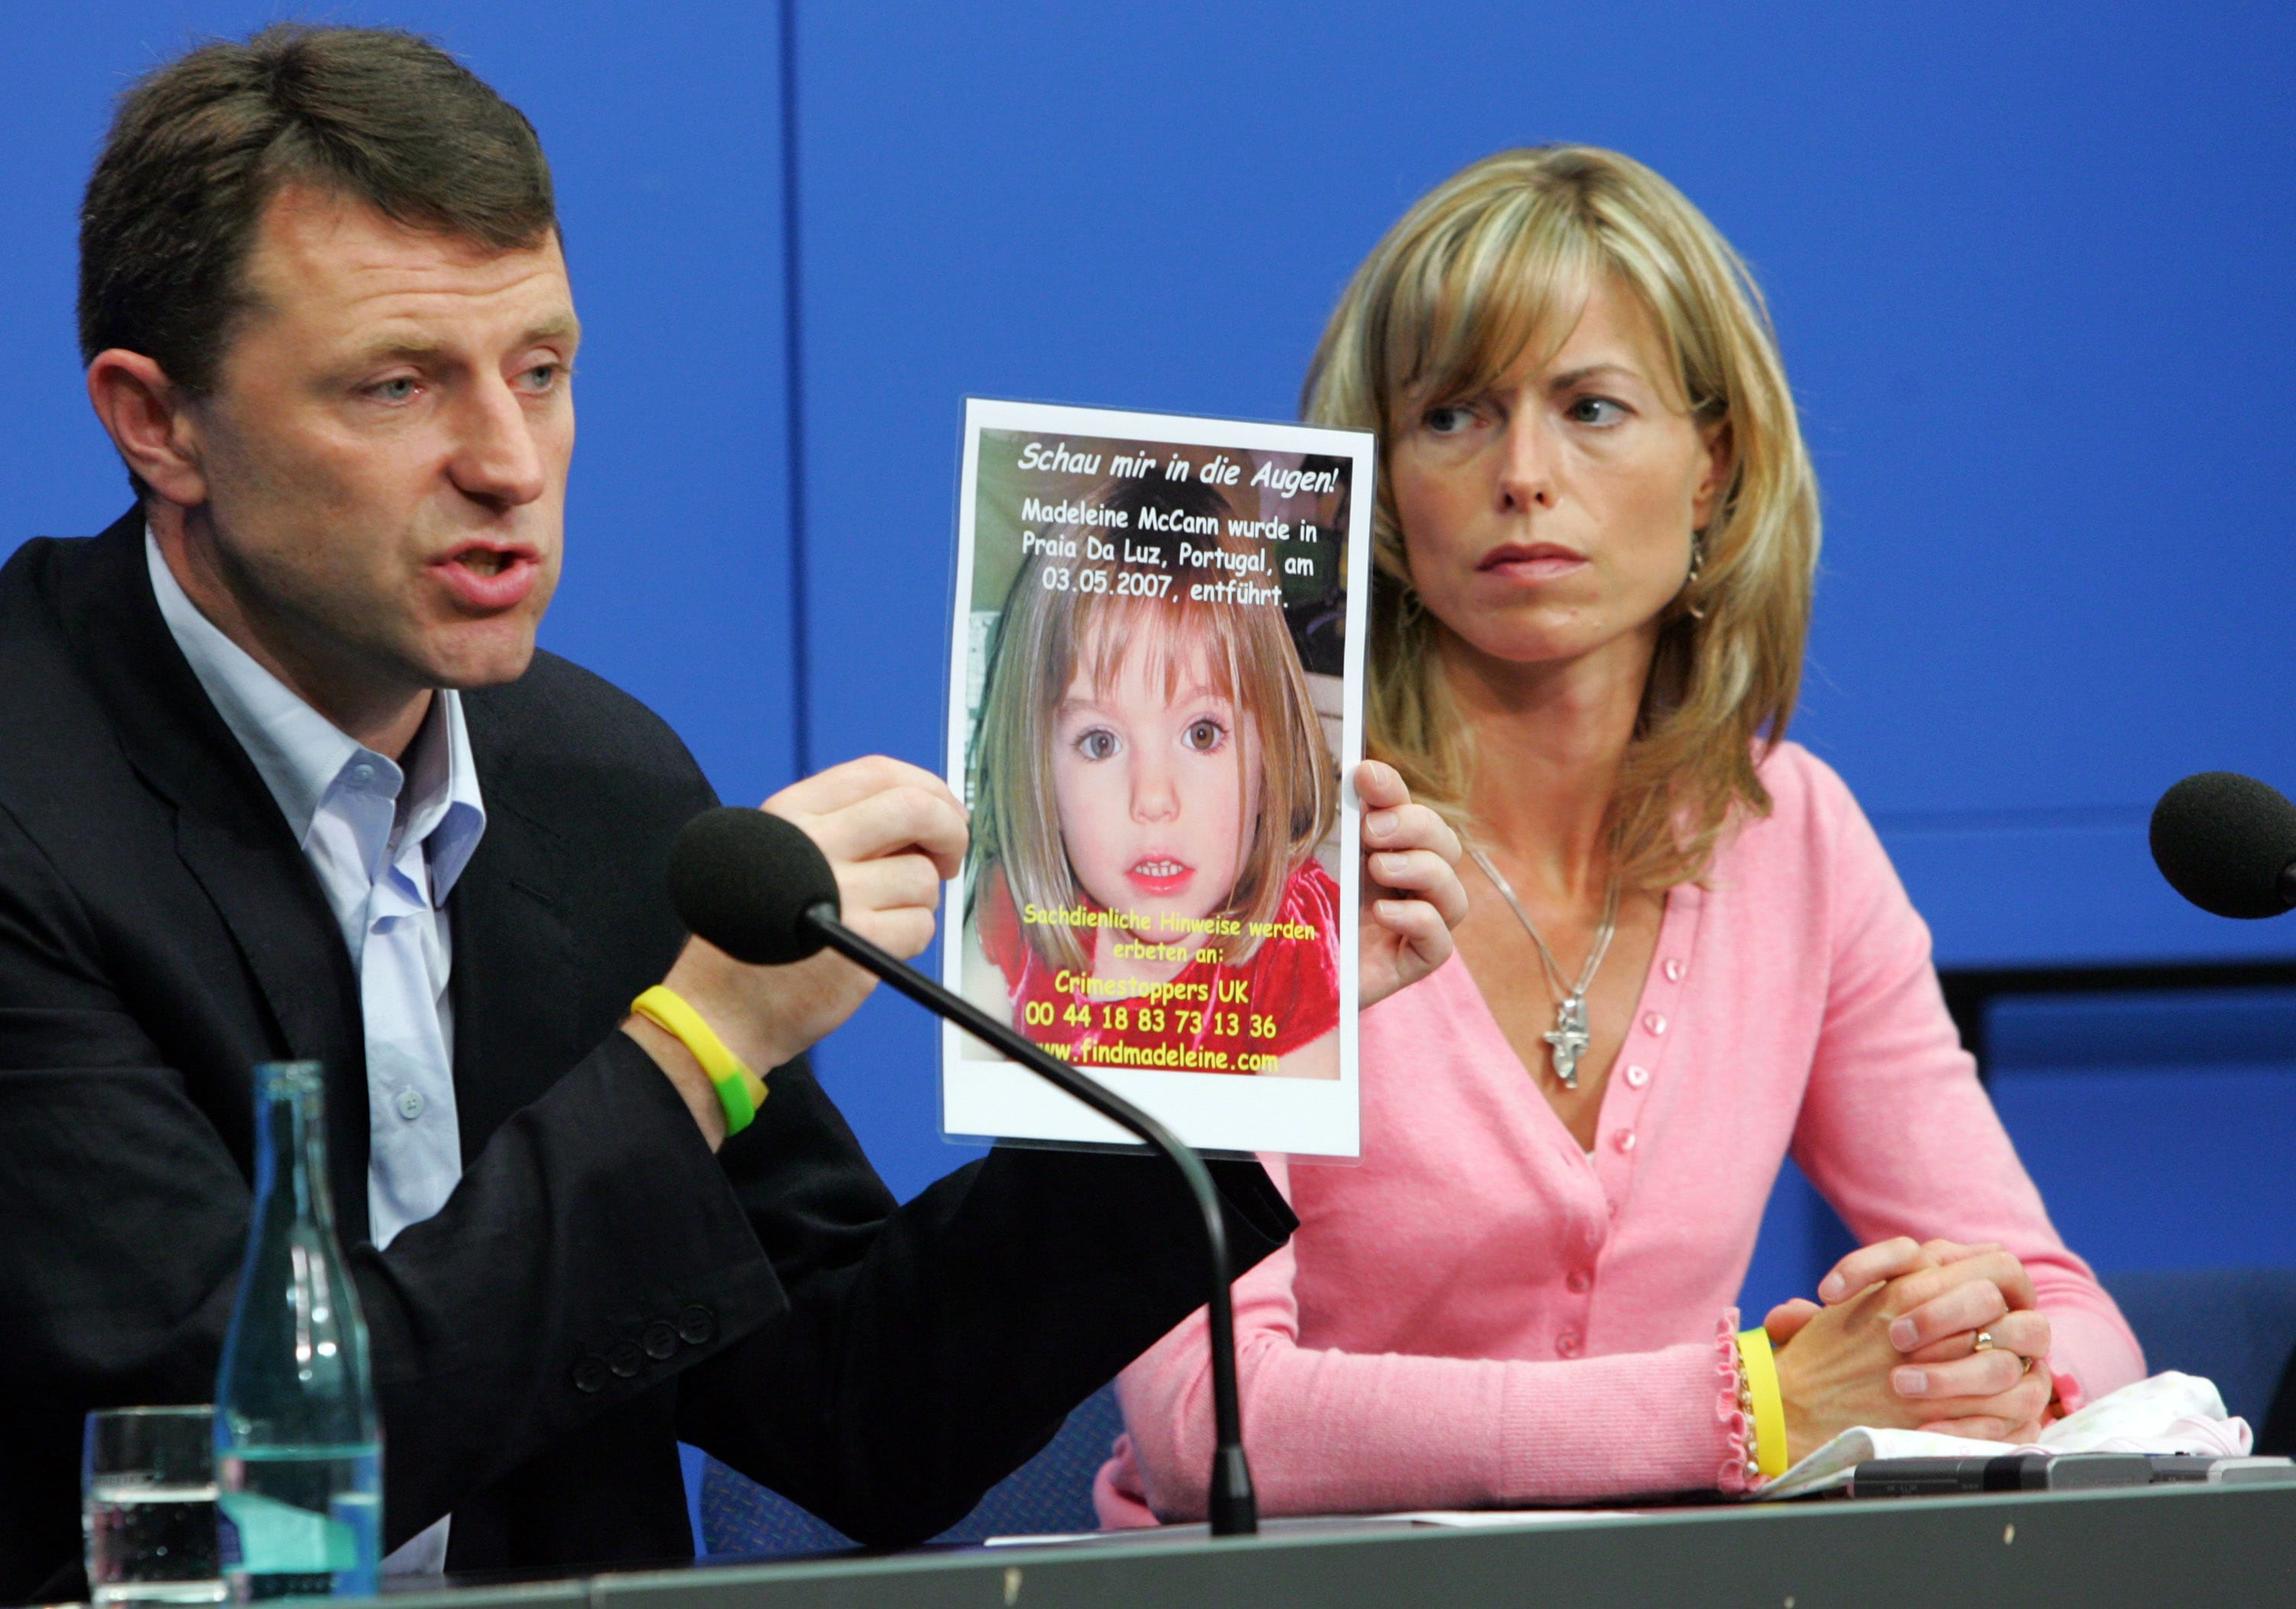 Sick Maddie McCann Tour Takes Customers To Locations Linked To Her Disappearance wsi imageoptim GettyImages 74414427